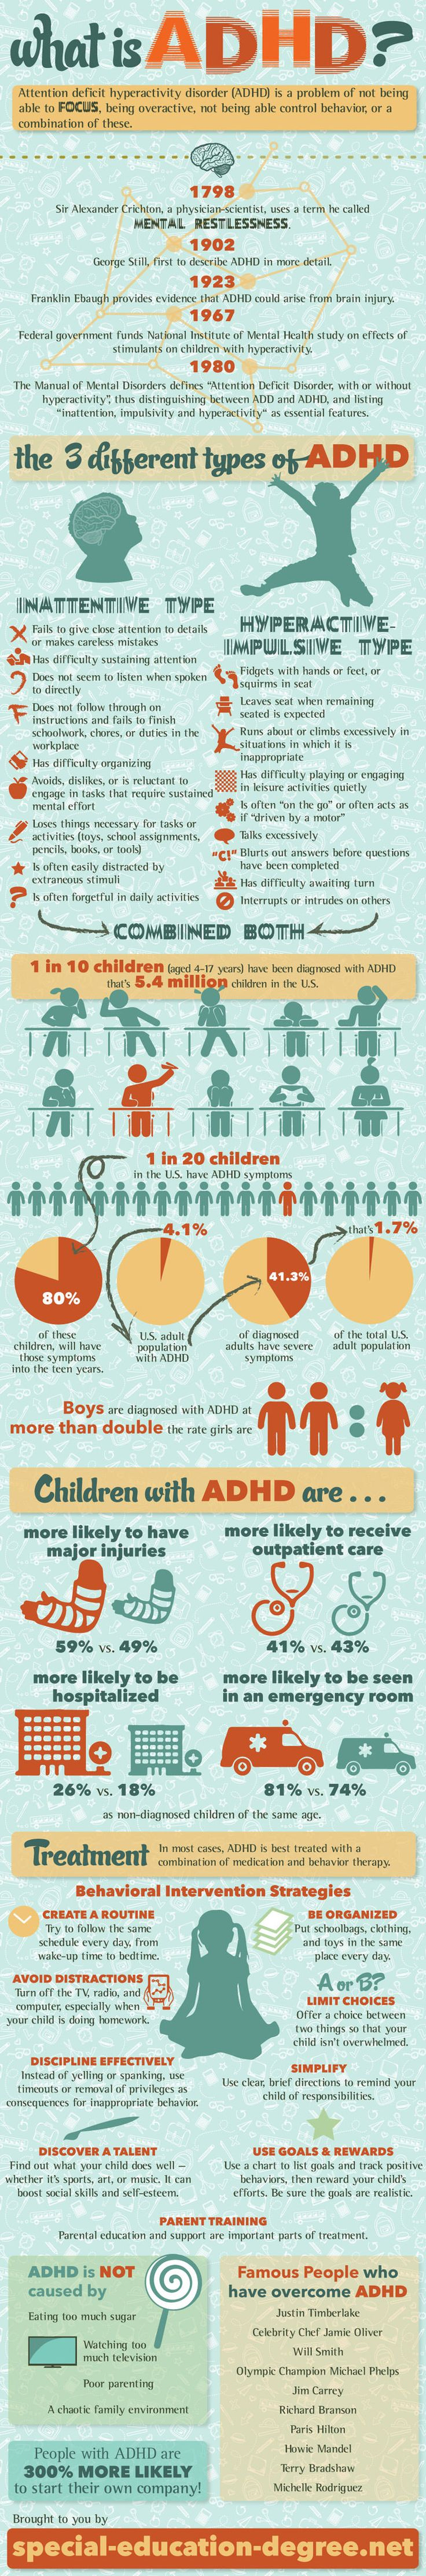 Good infographic that gives some perspective about ADHD. I have a difference of opinion with the statement about sugar playing a role at the bottom. I do suspect an impact. See my article: http://www.diagnosisdiet.com/sugar-and-adhd/